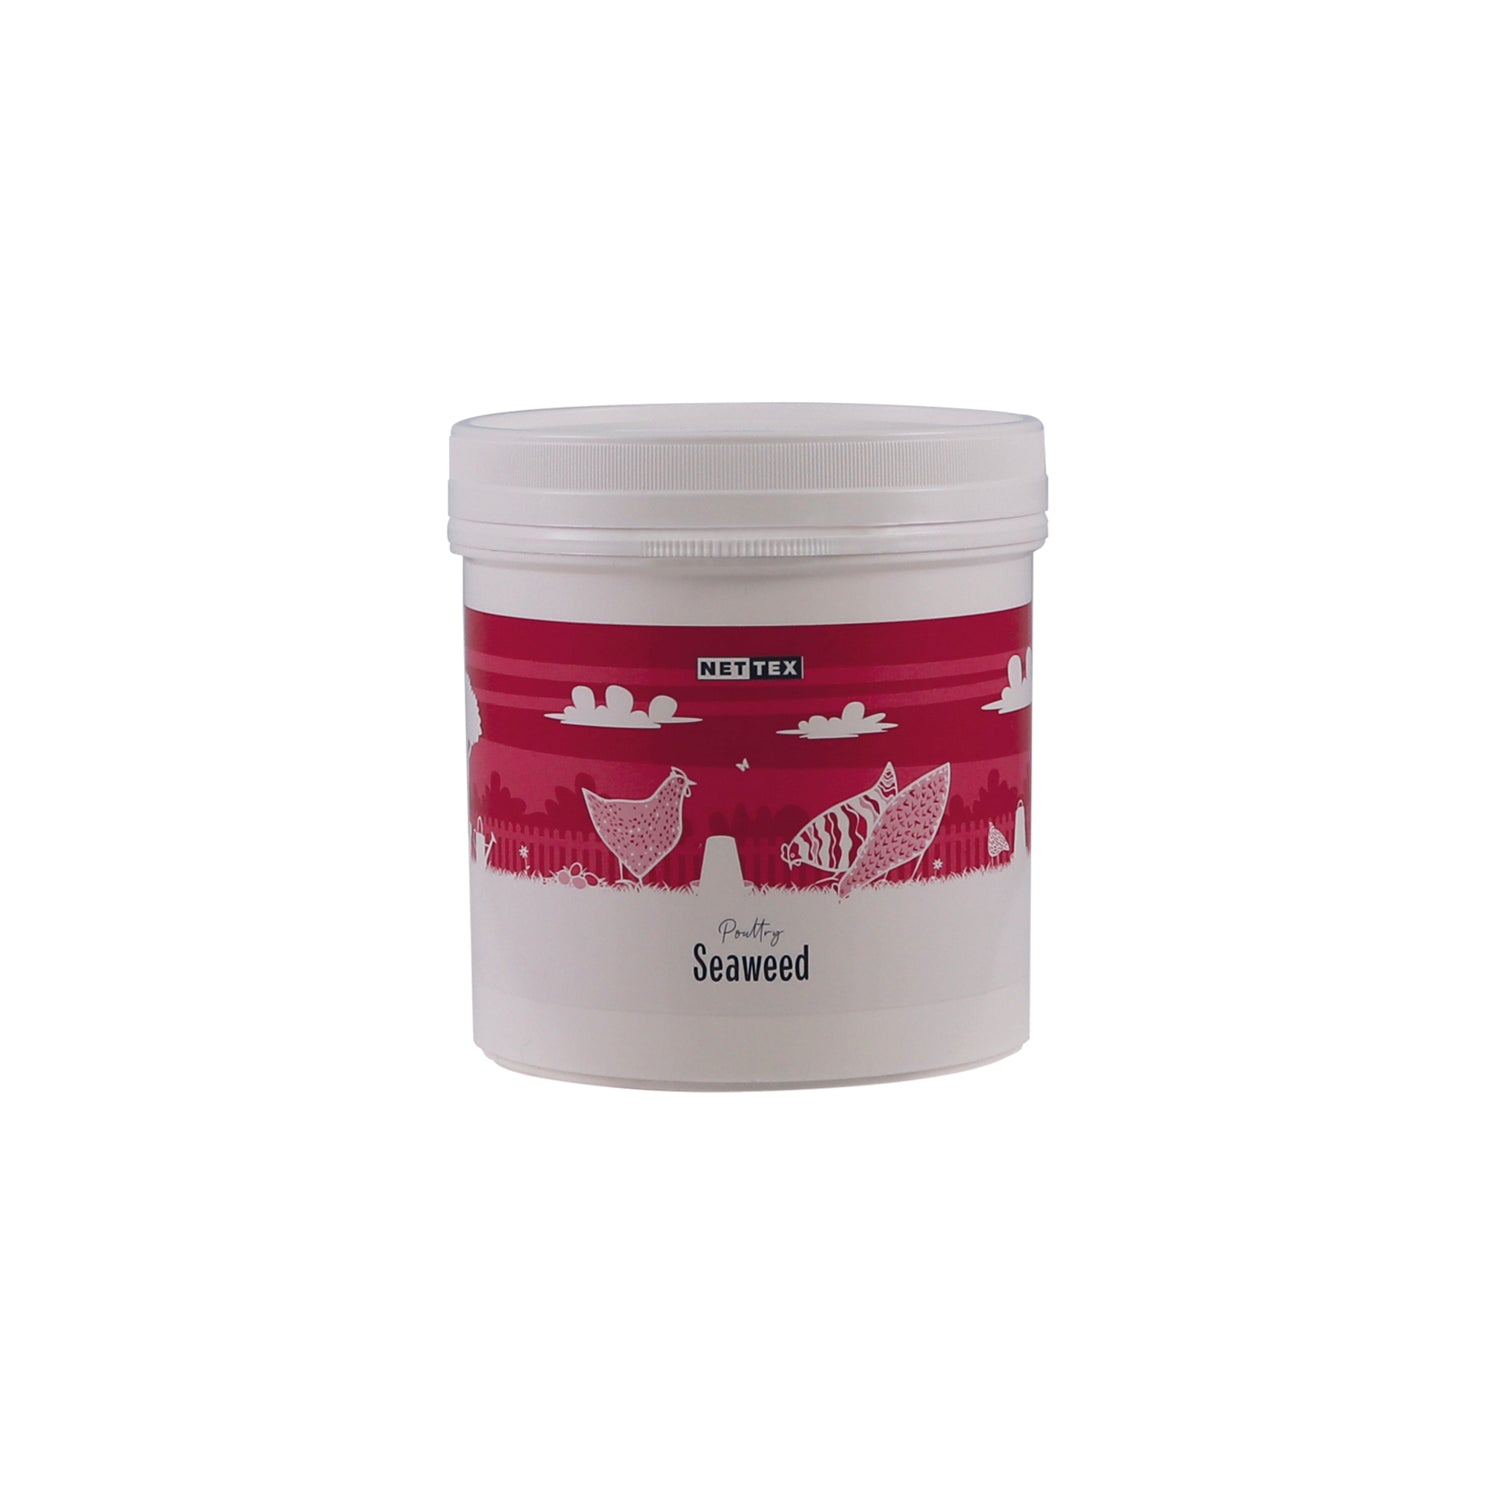 Nettex Poultry Seaweed 400g